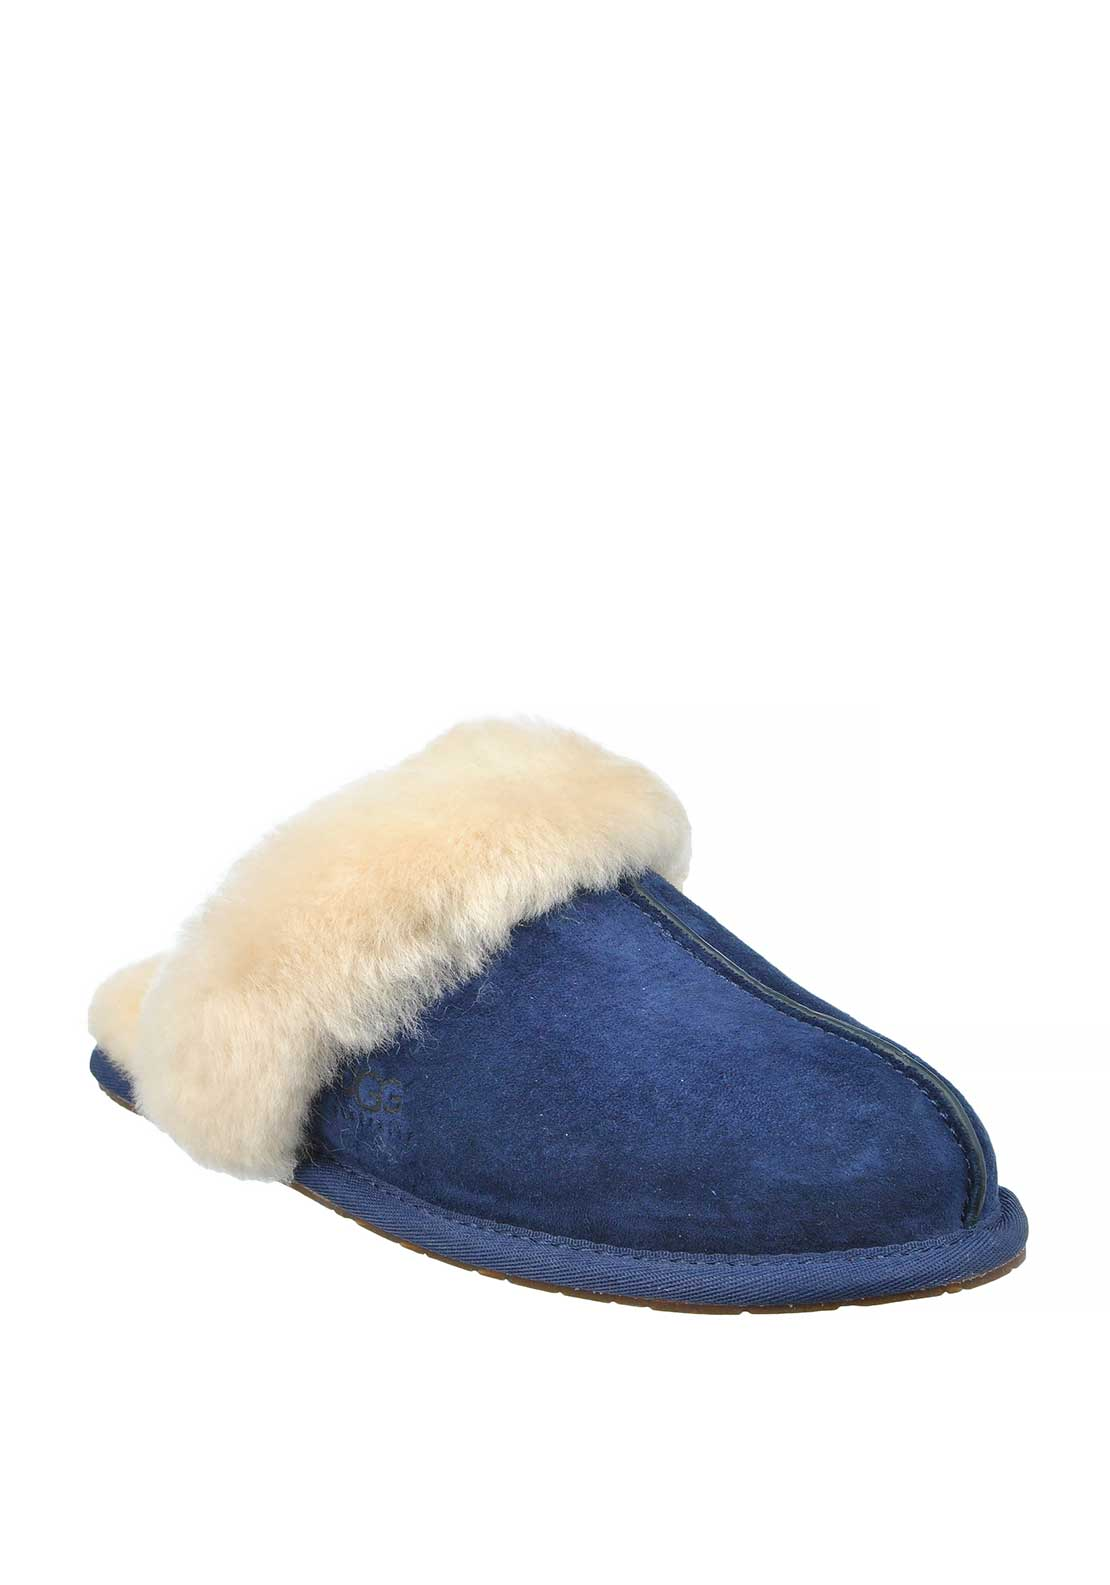 UGG Australia Womens Suede Scuffette II Slippers, Midnight